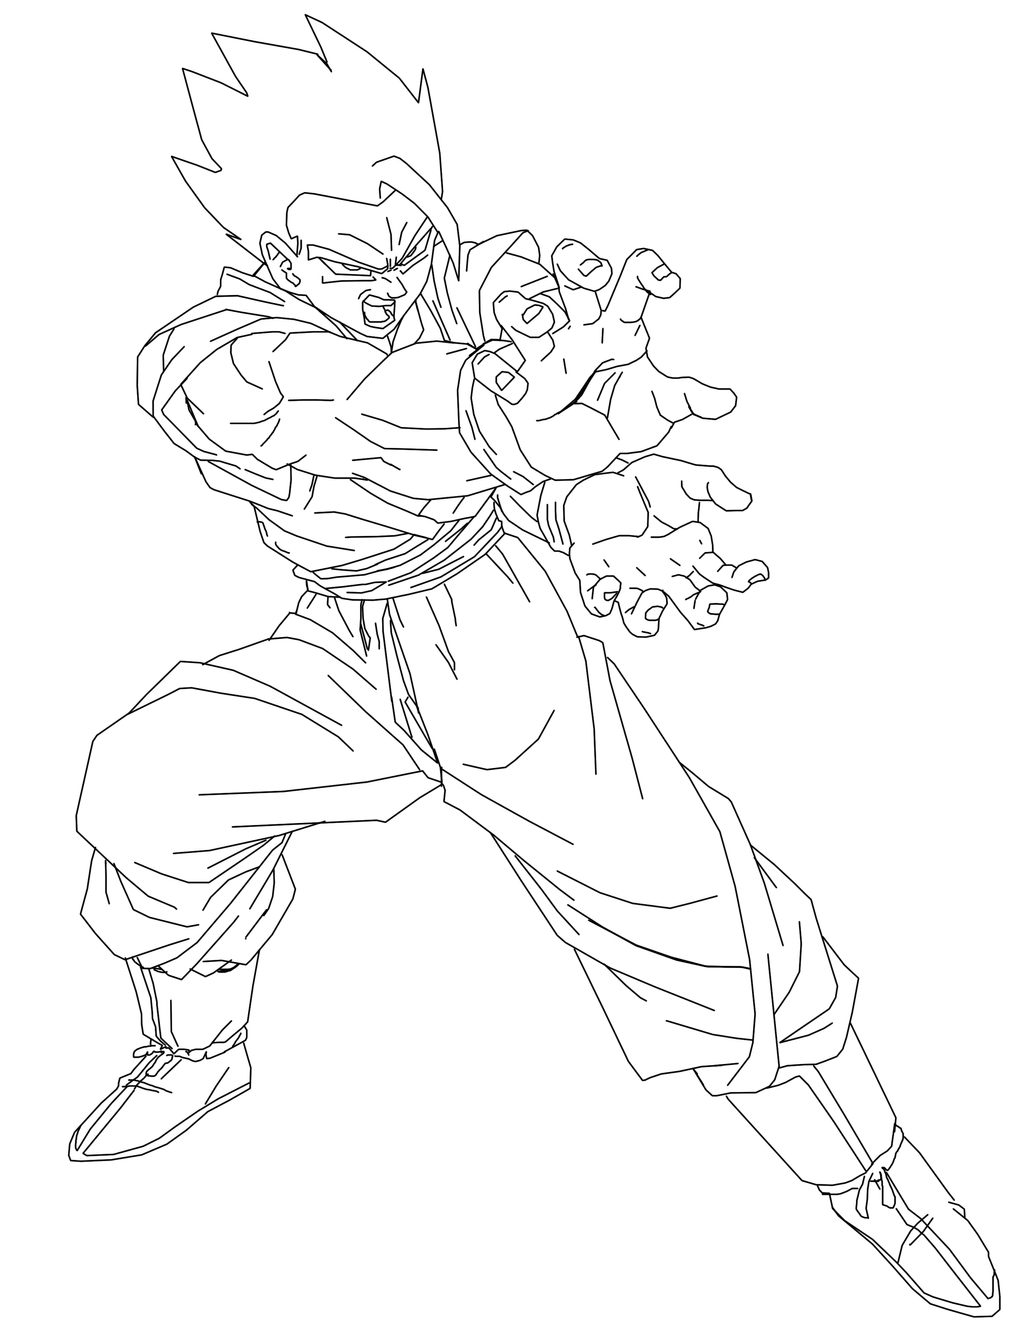 future gohan coloring pages - mystic gohan line art by brusselthesaiyan on deviantart